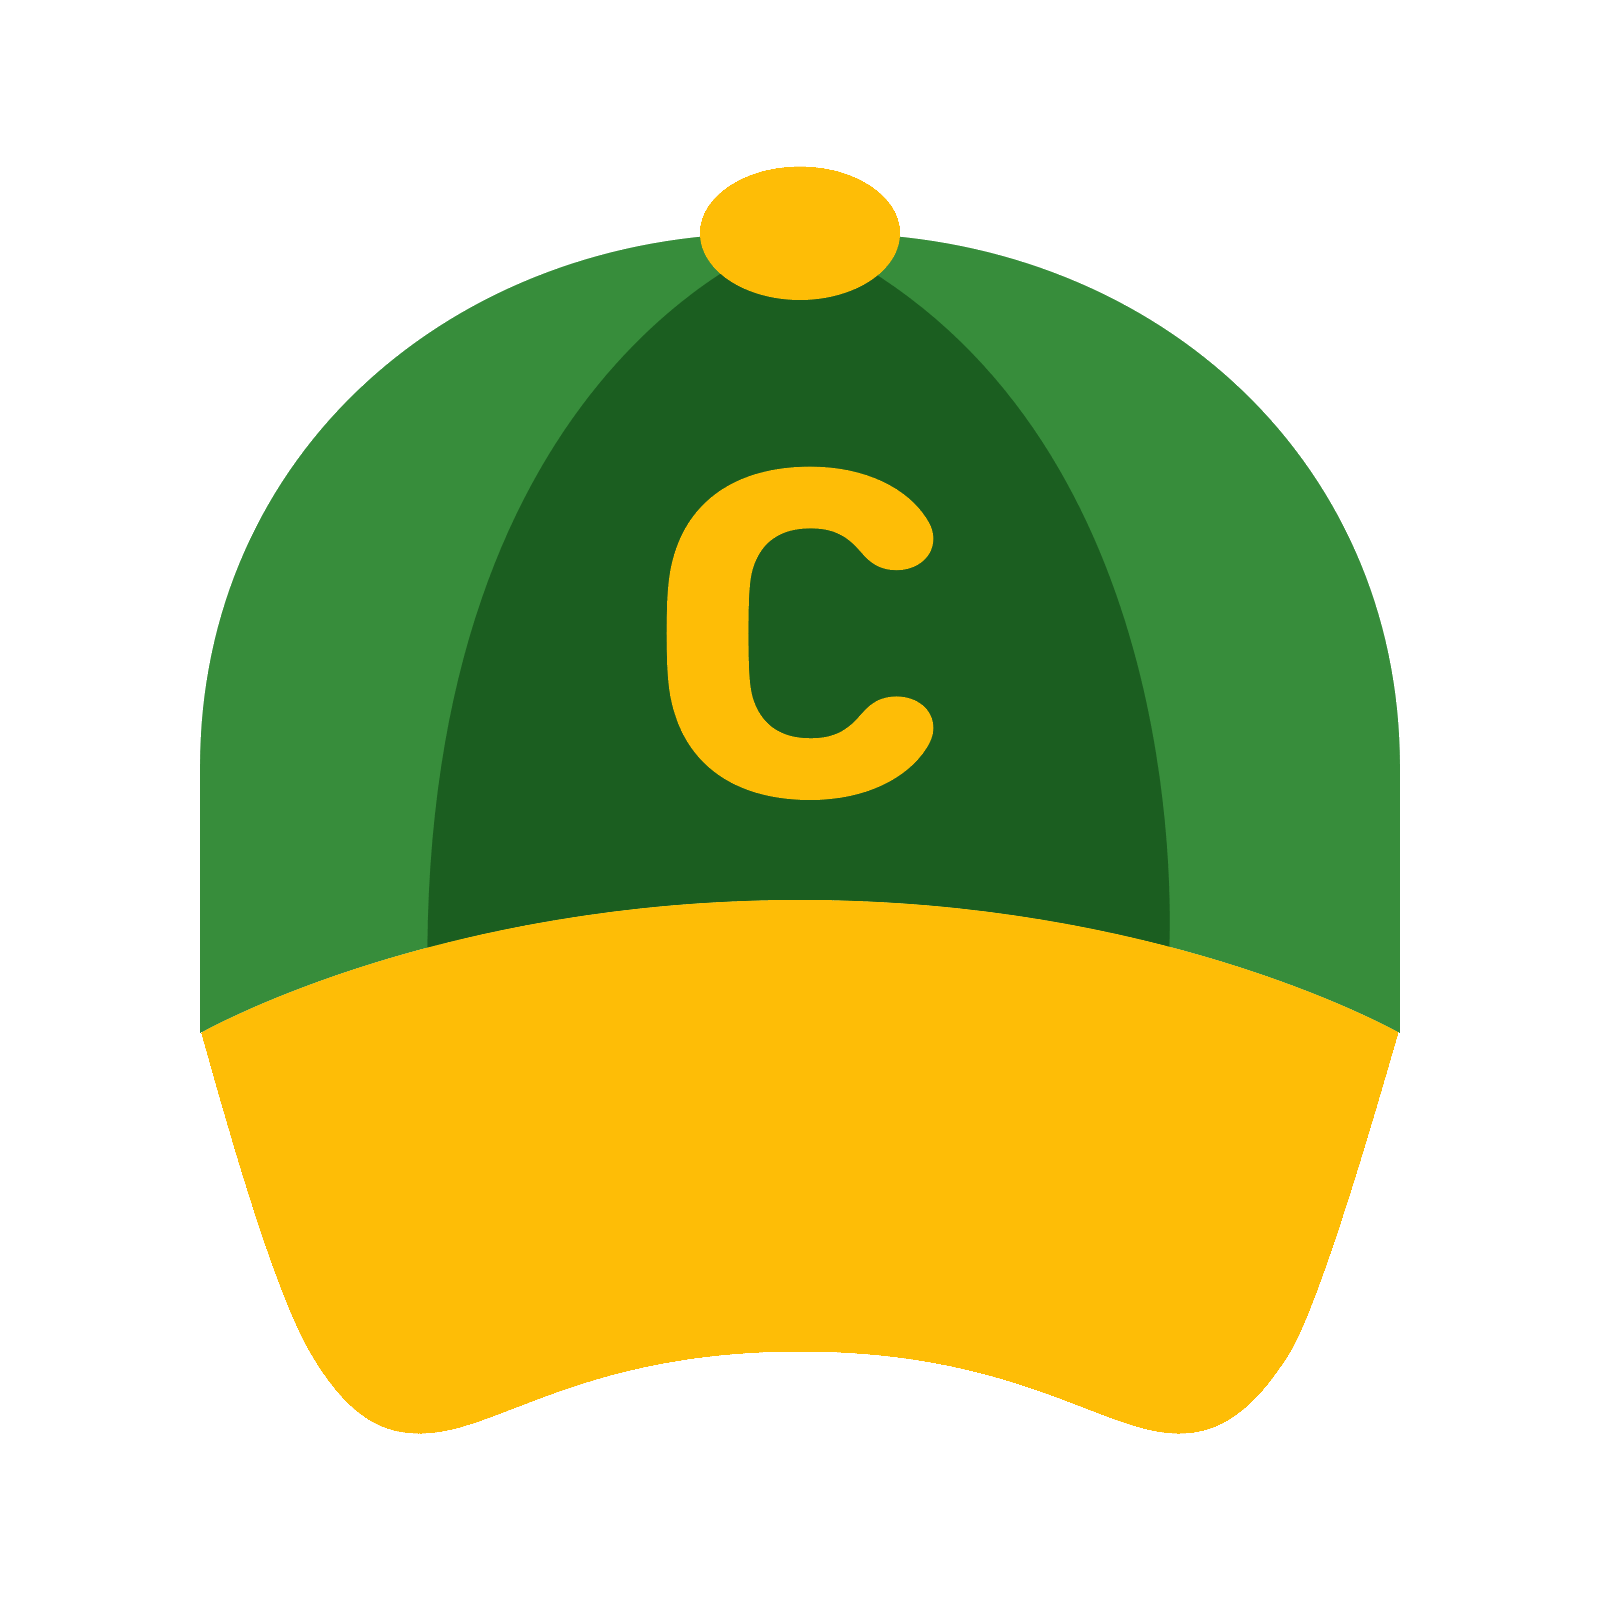 Clipart baseball newspaper graphic freeuse stock Baseball Cap Icon - free download, PNG and vector graphic freeuse stock